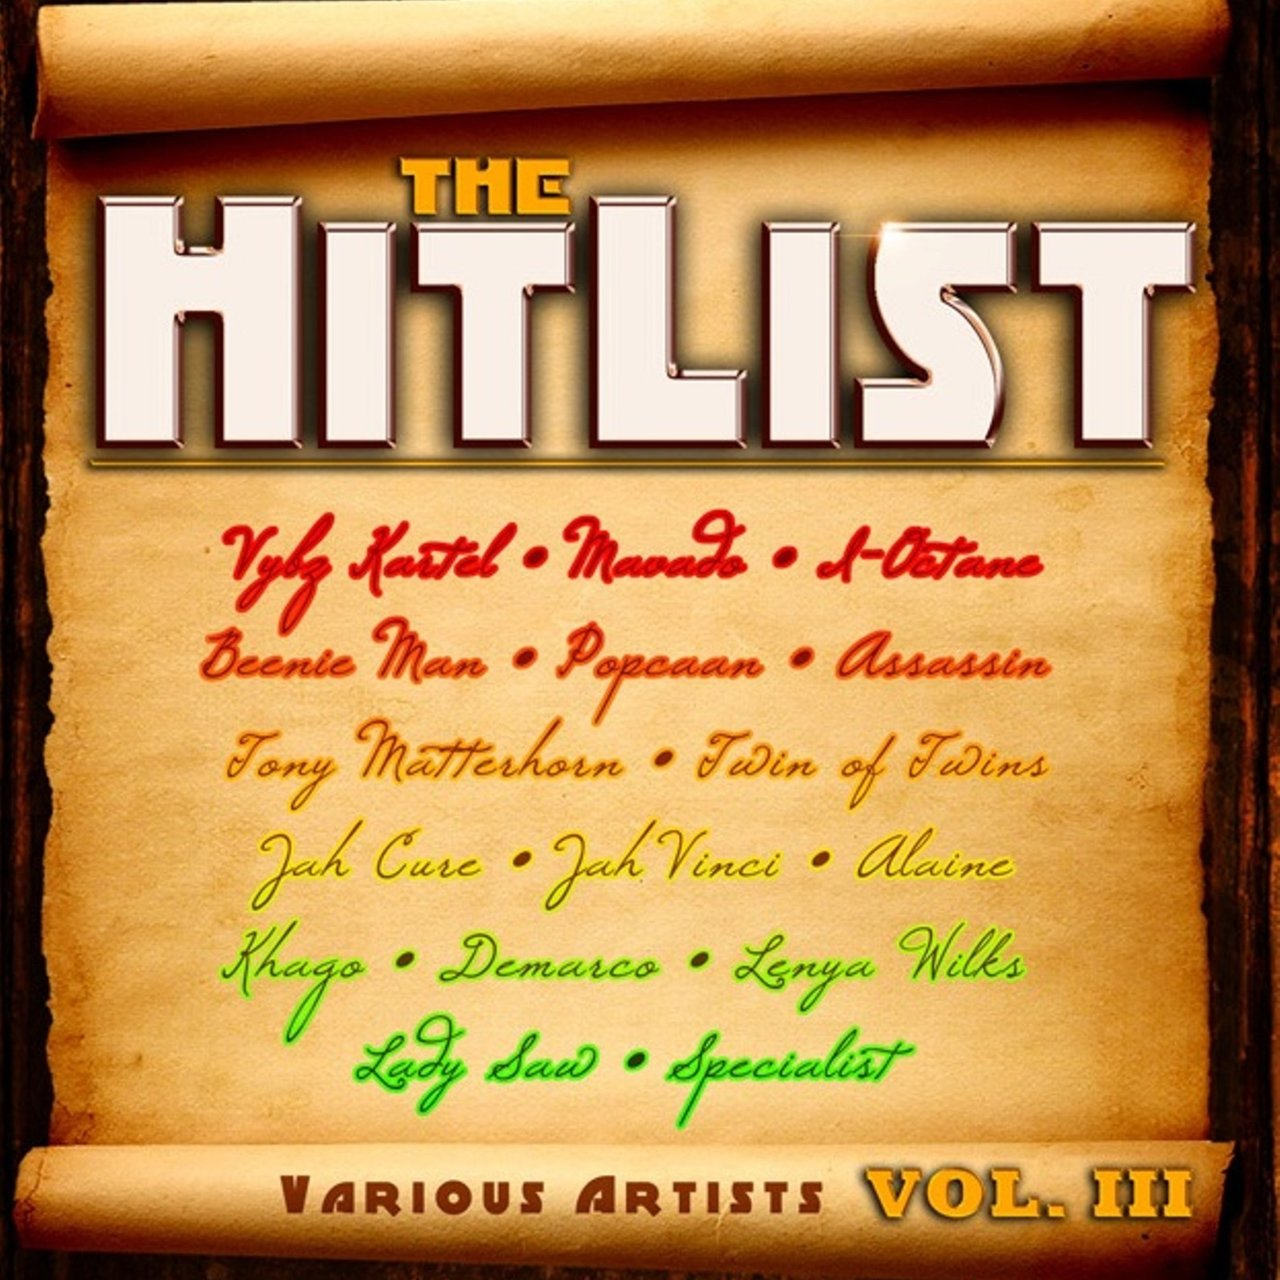 The Hit List III